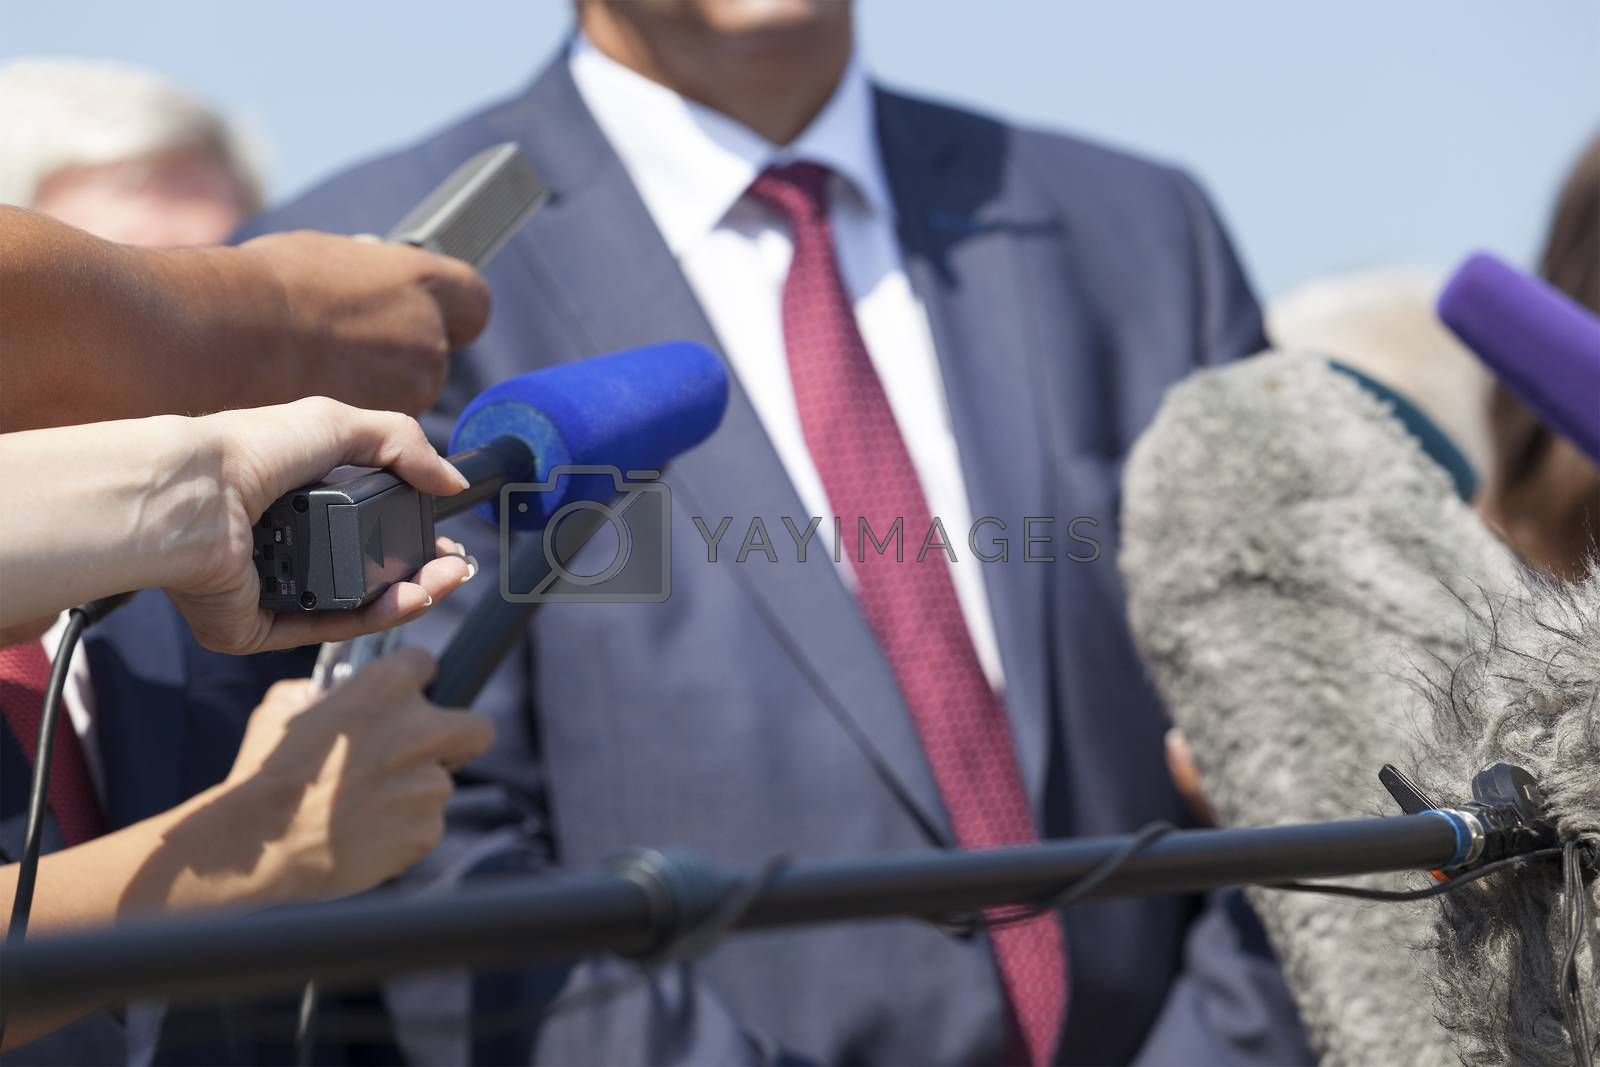 Media interview with businessman, politician or spokesperson